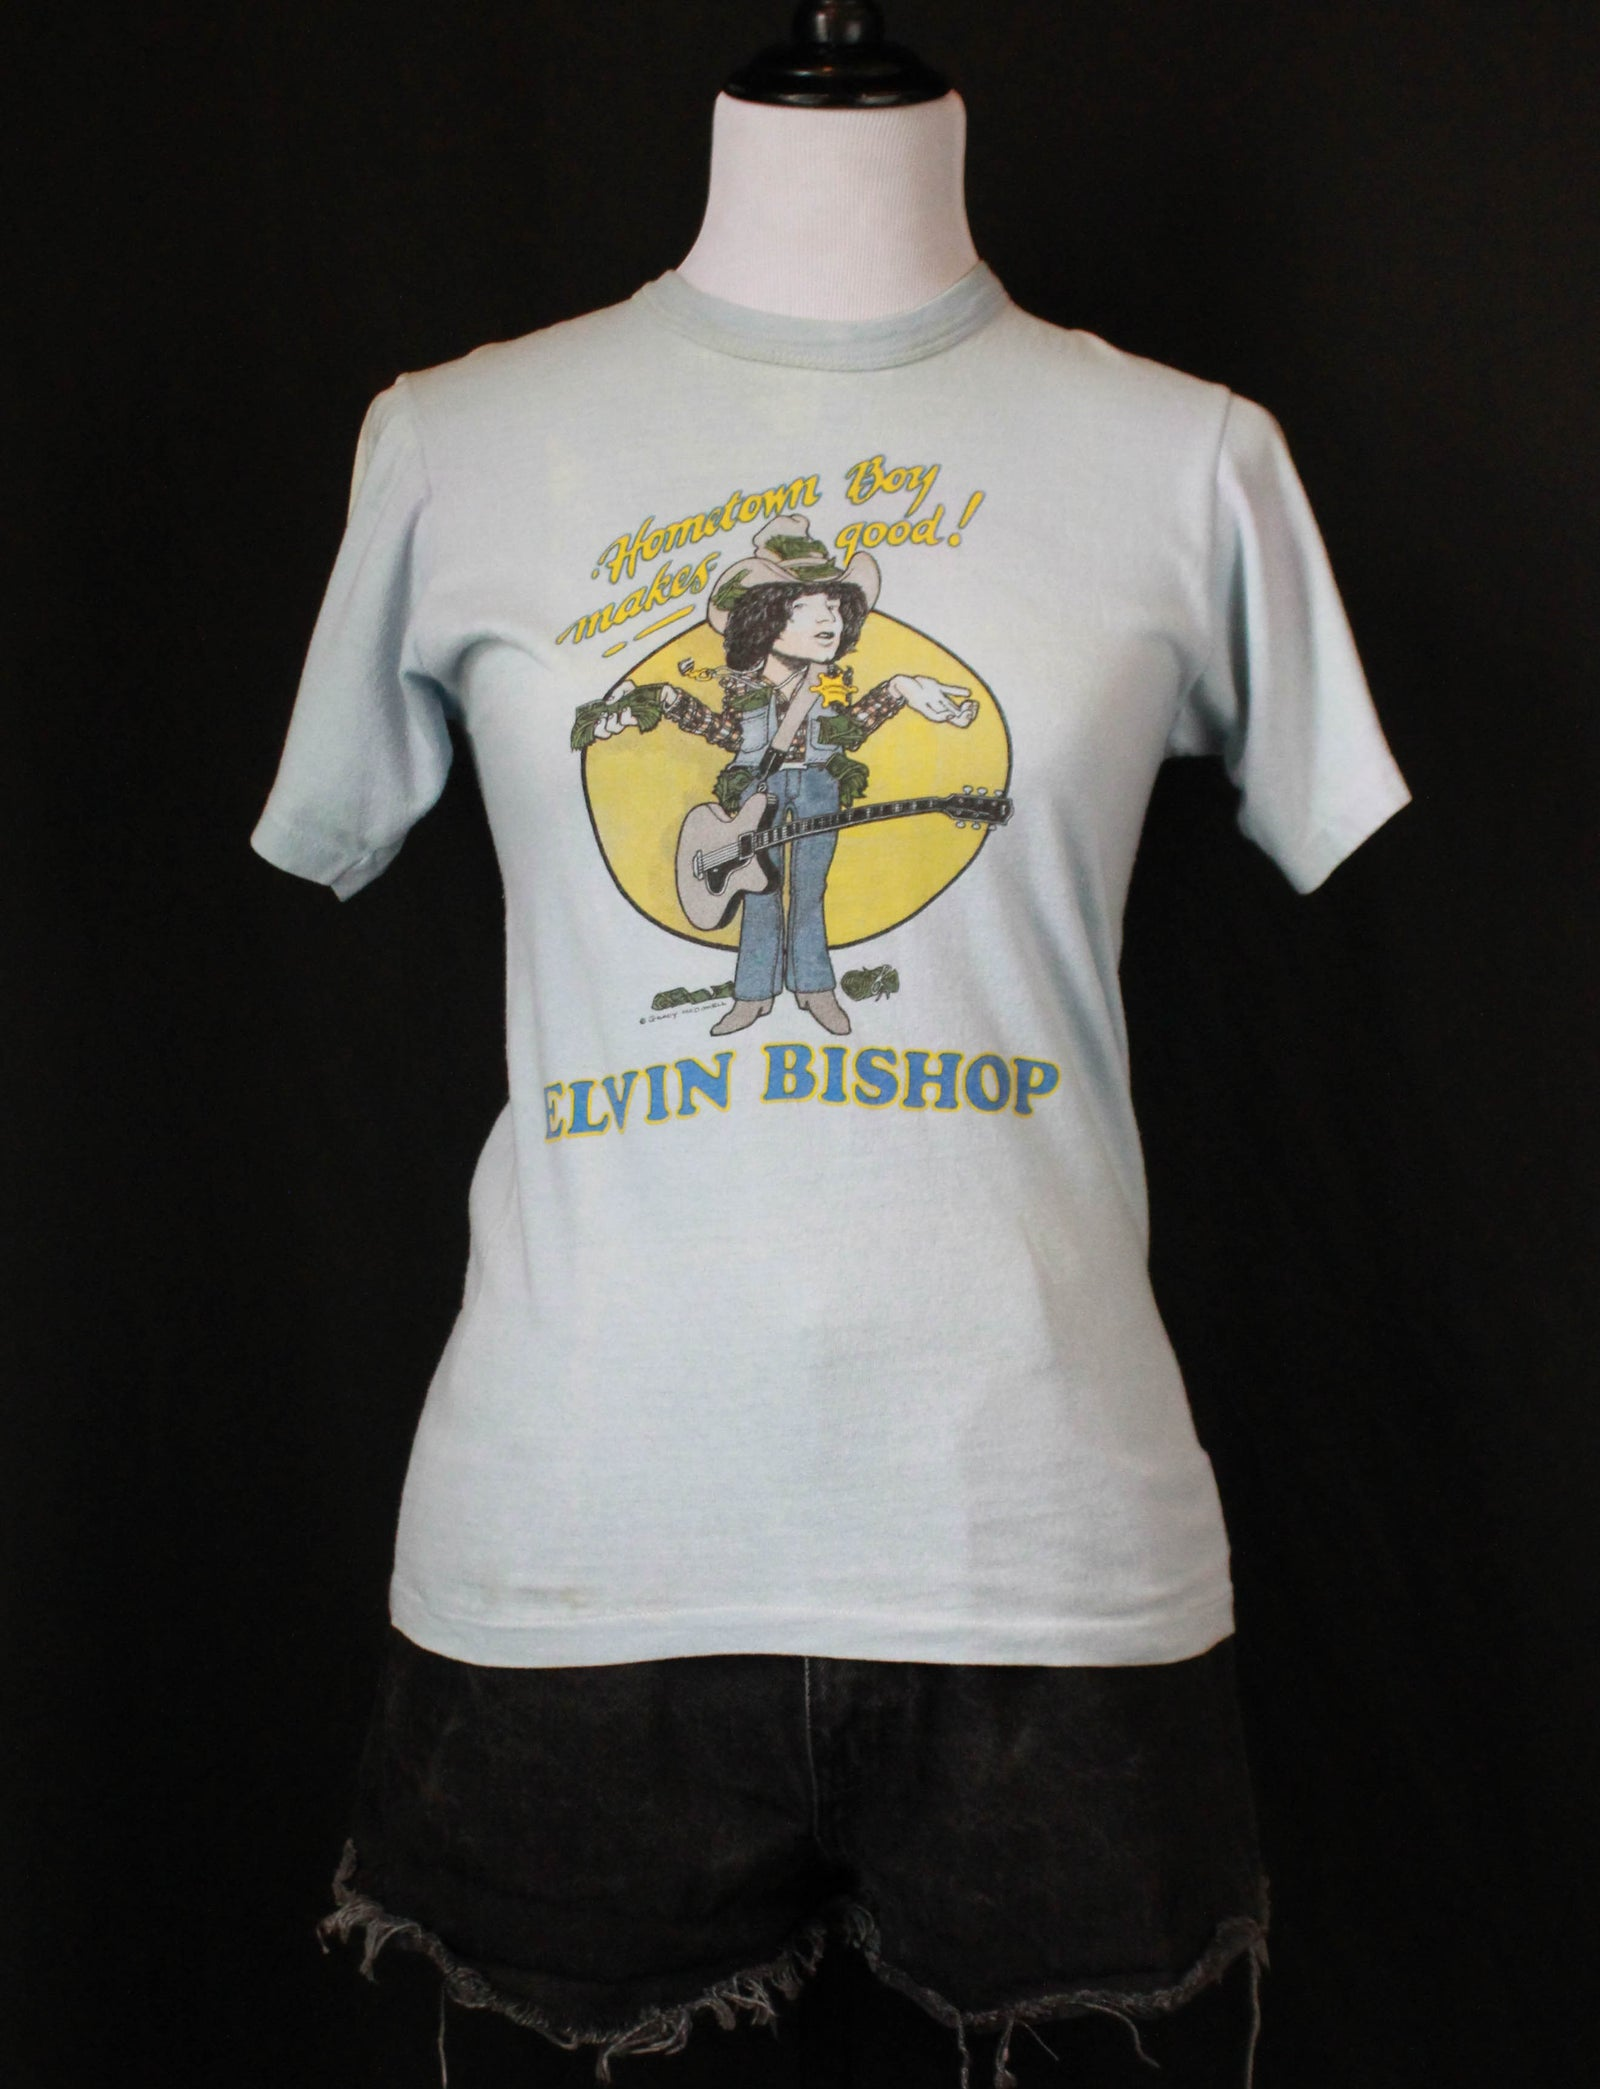 Vintage Elvin Bishop Concert T Shirt 70's Hometown Boy Makes Good - Small